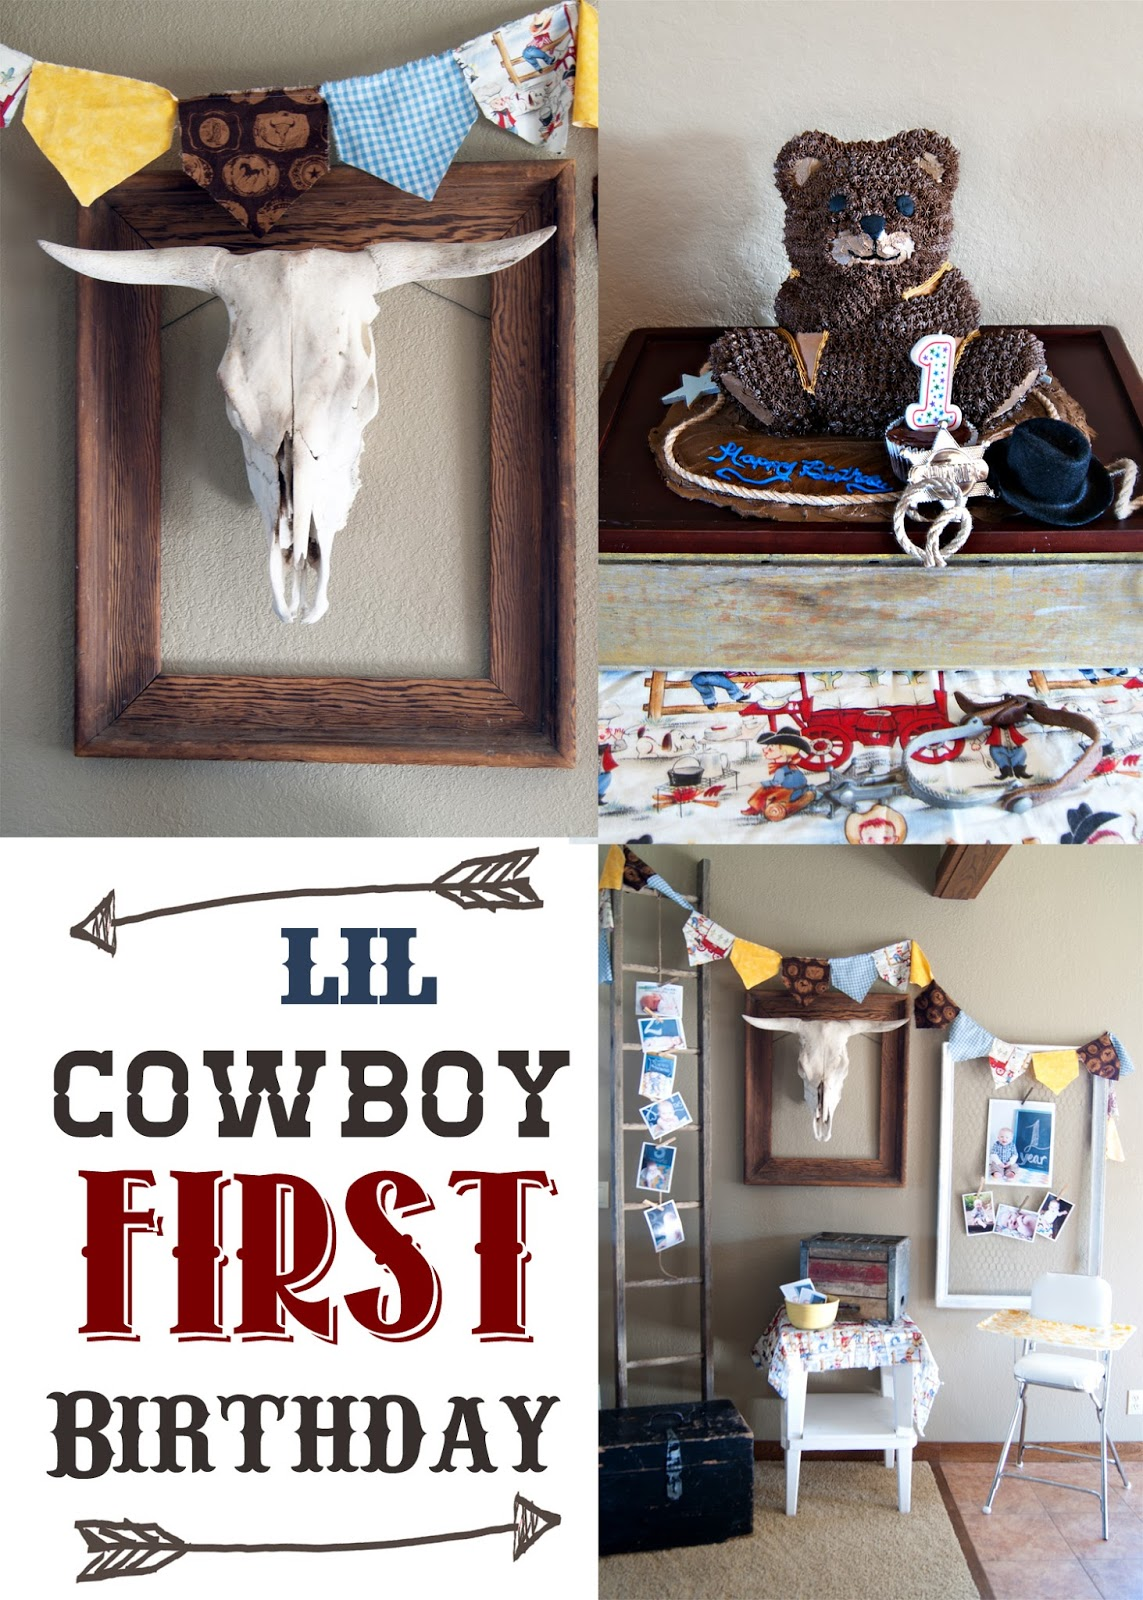 Bull skull and Binting, Party Backdrop and Cowboy Bear Cake